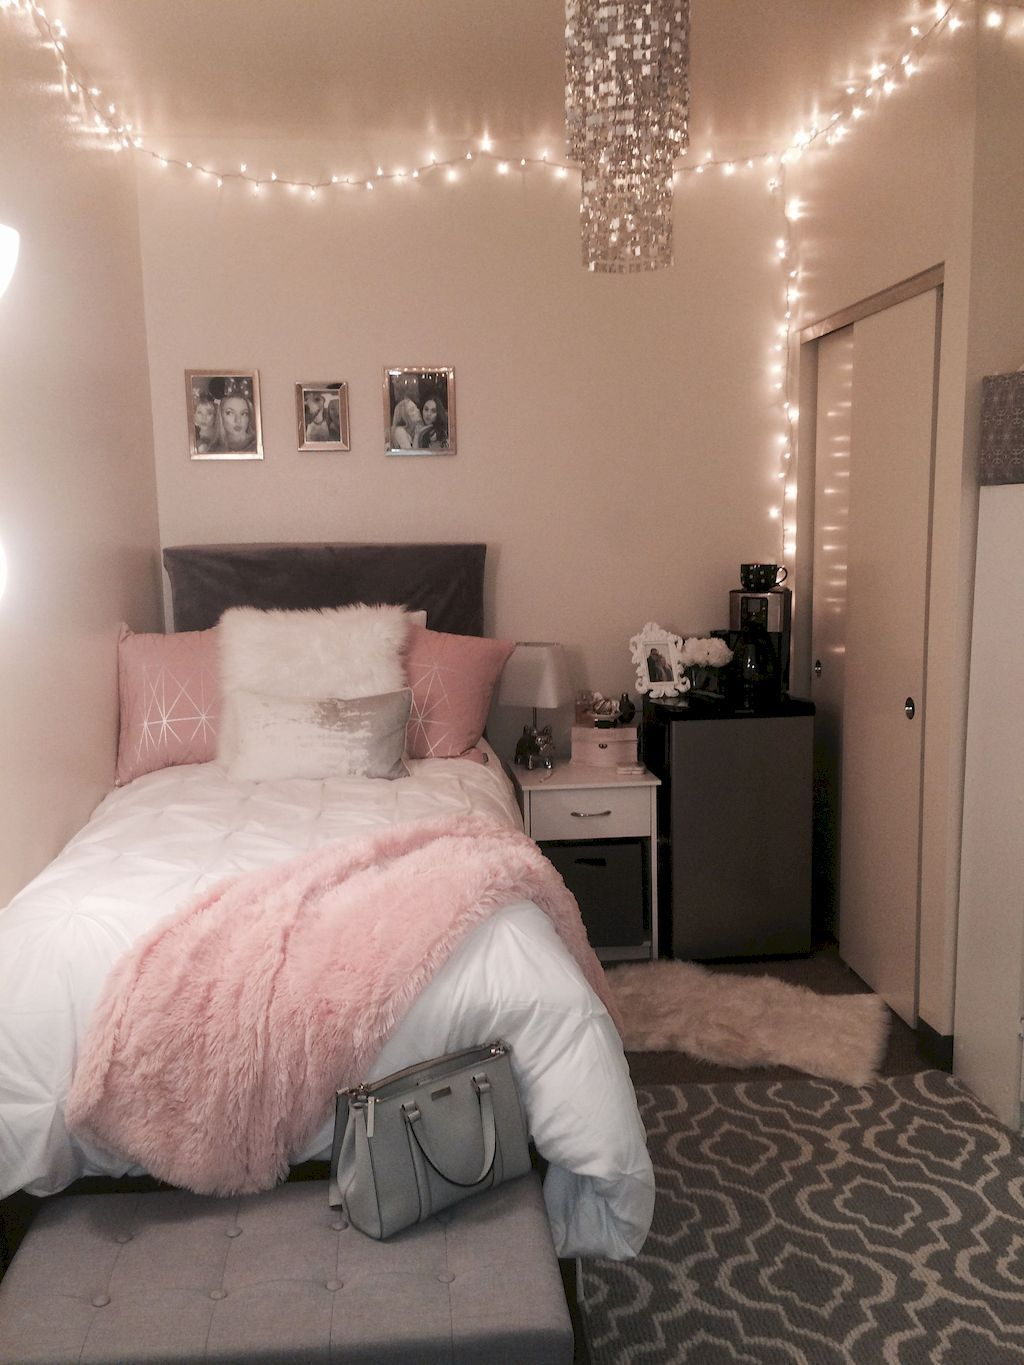 Simple Diy Apartment Decorating Ideas On A Budget 08 With Images